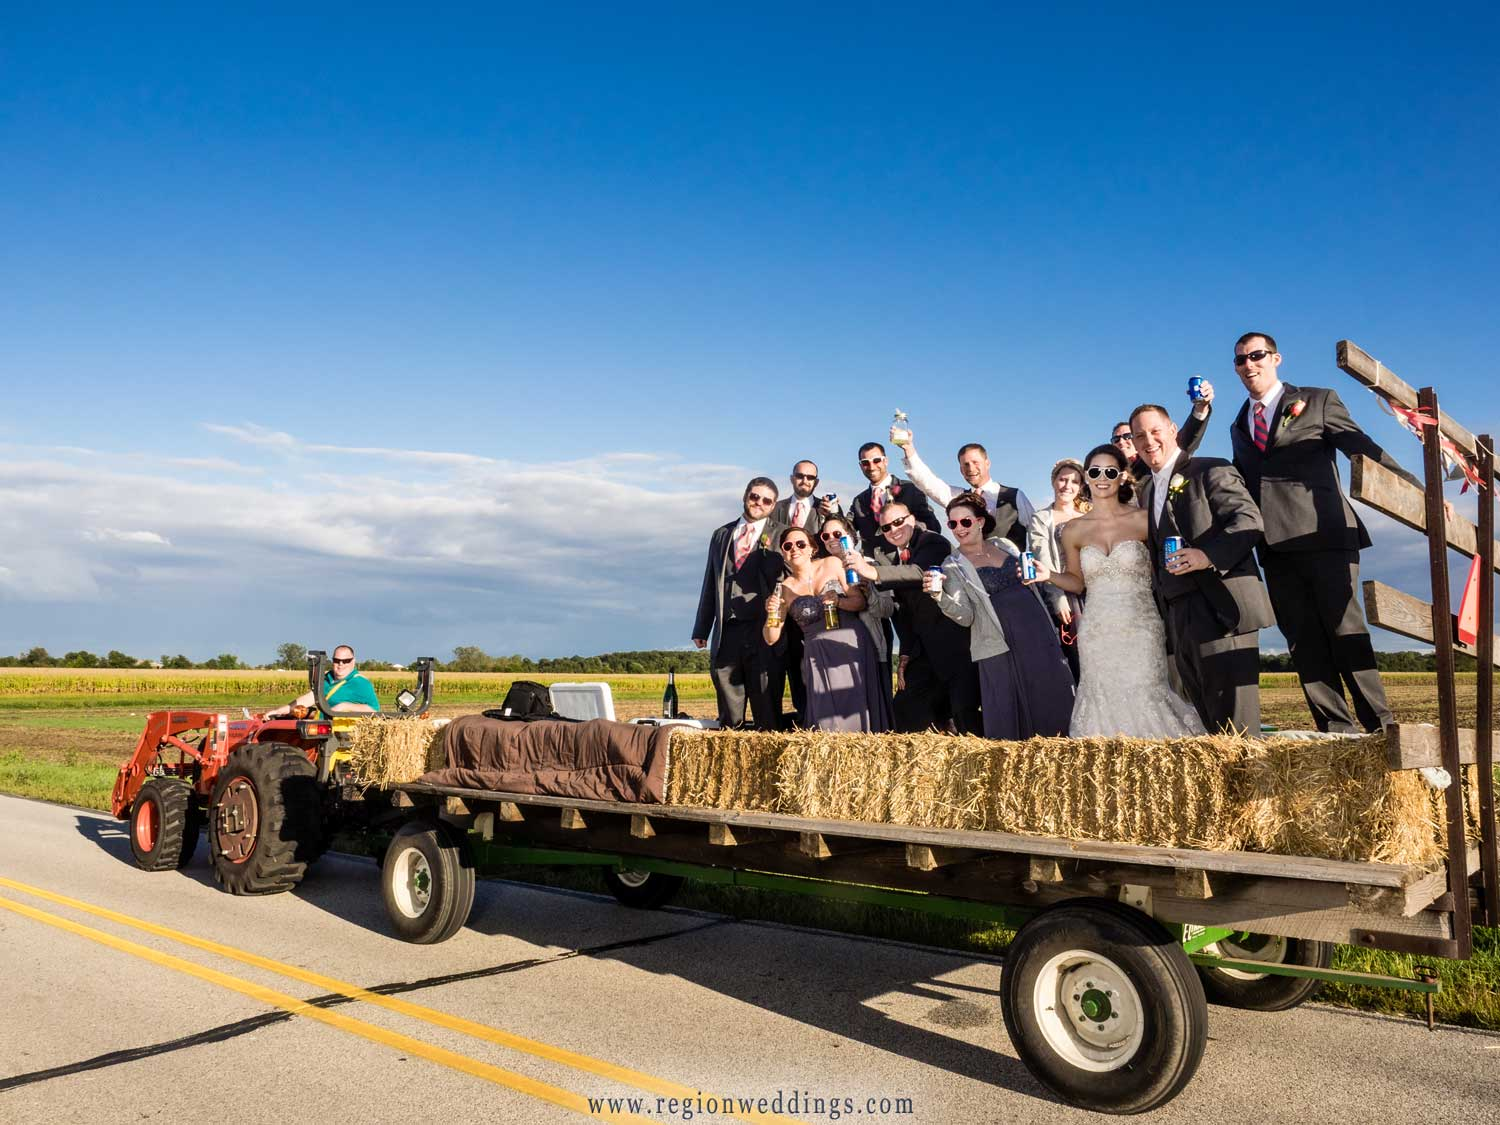 The wedding party on a hayride through the backroads of Lowell, Indiana.